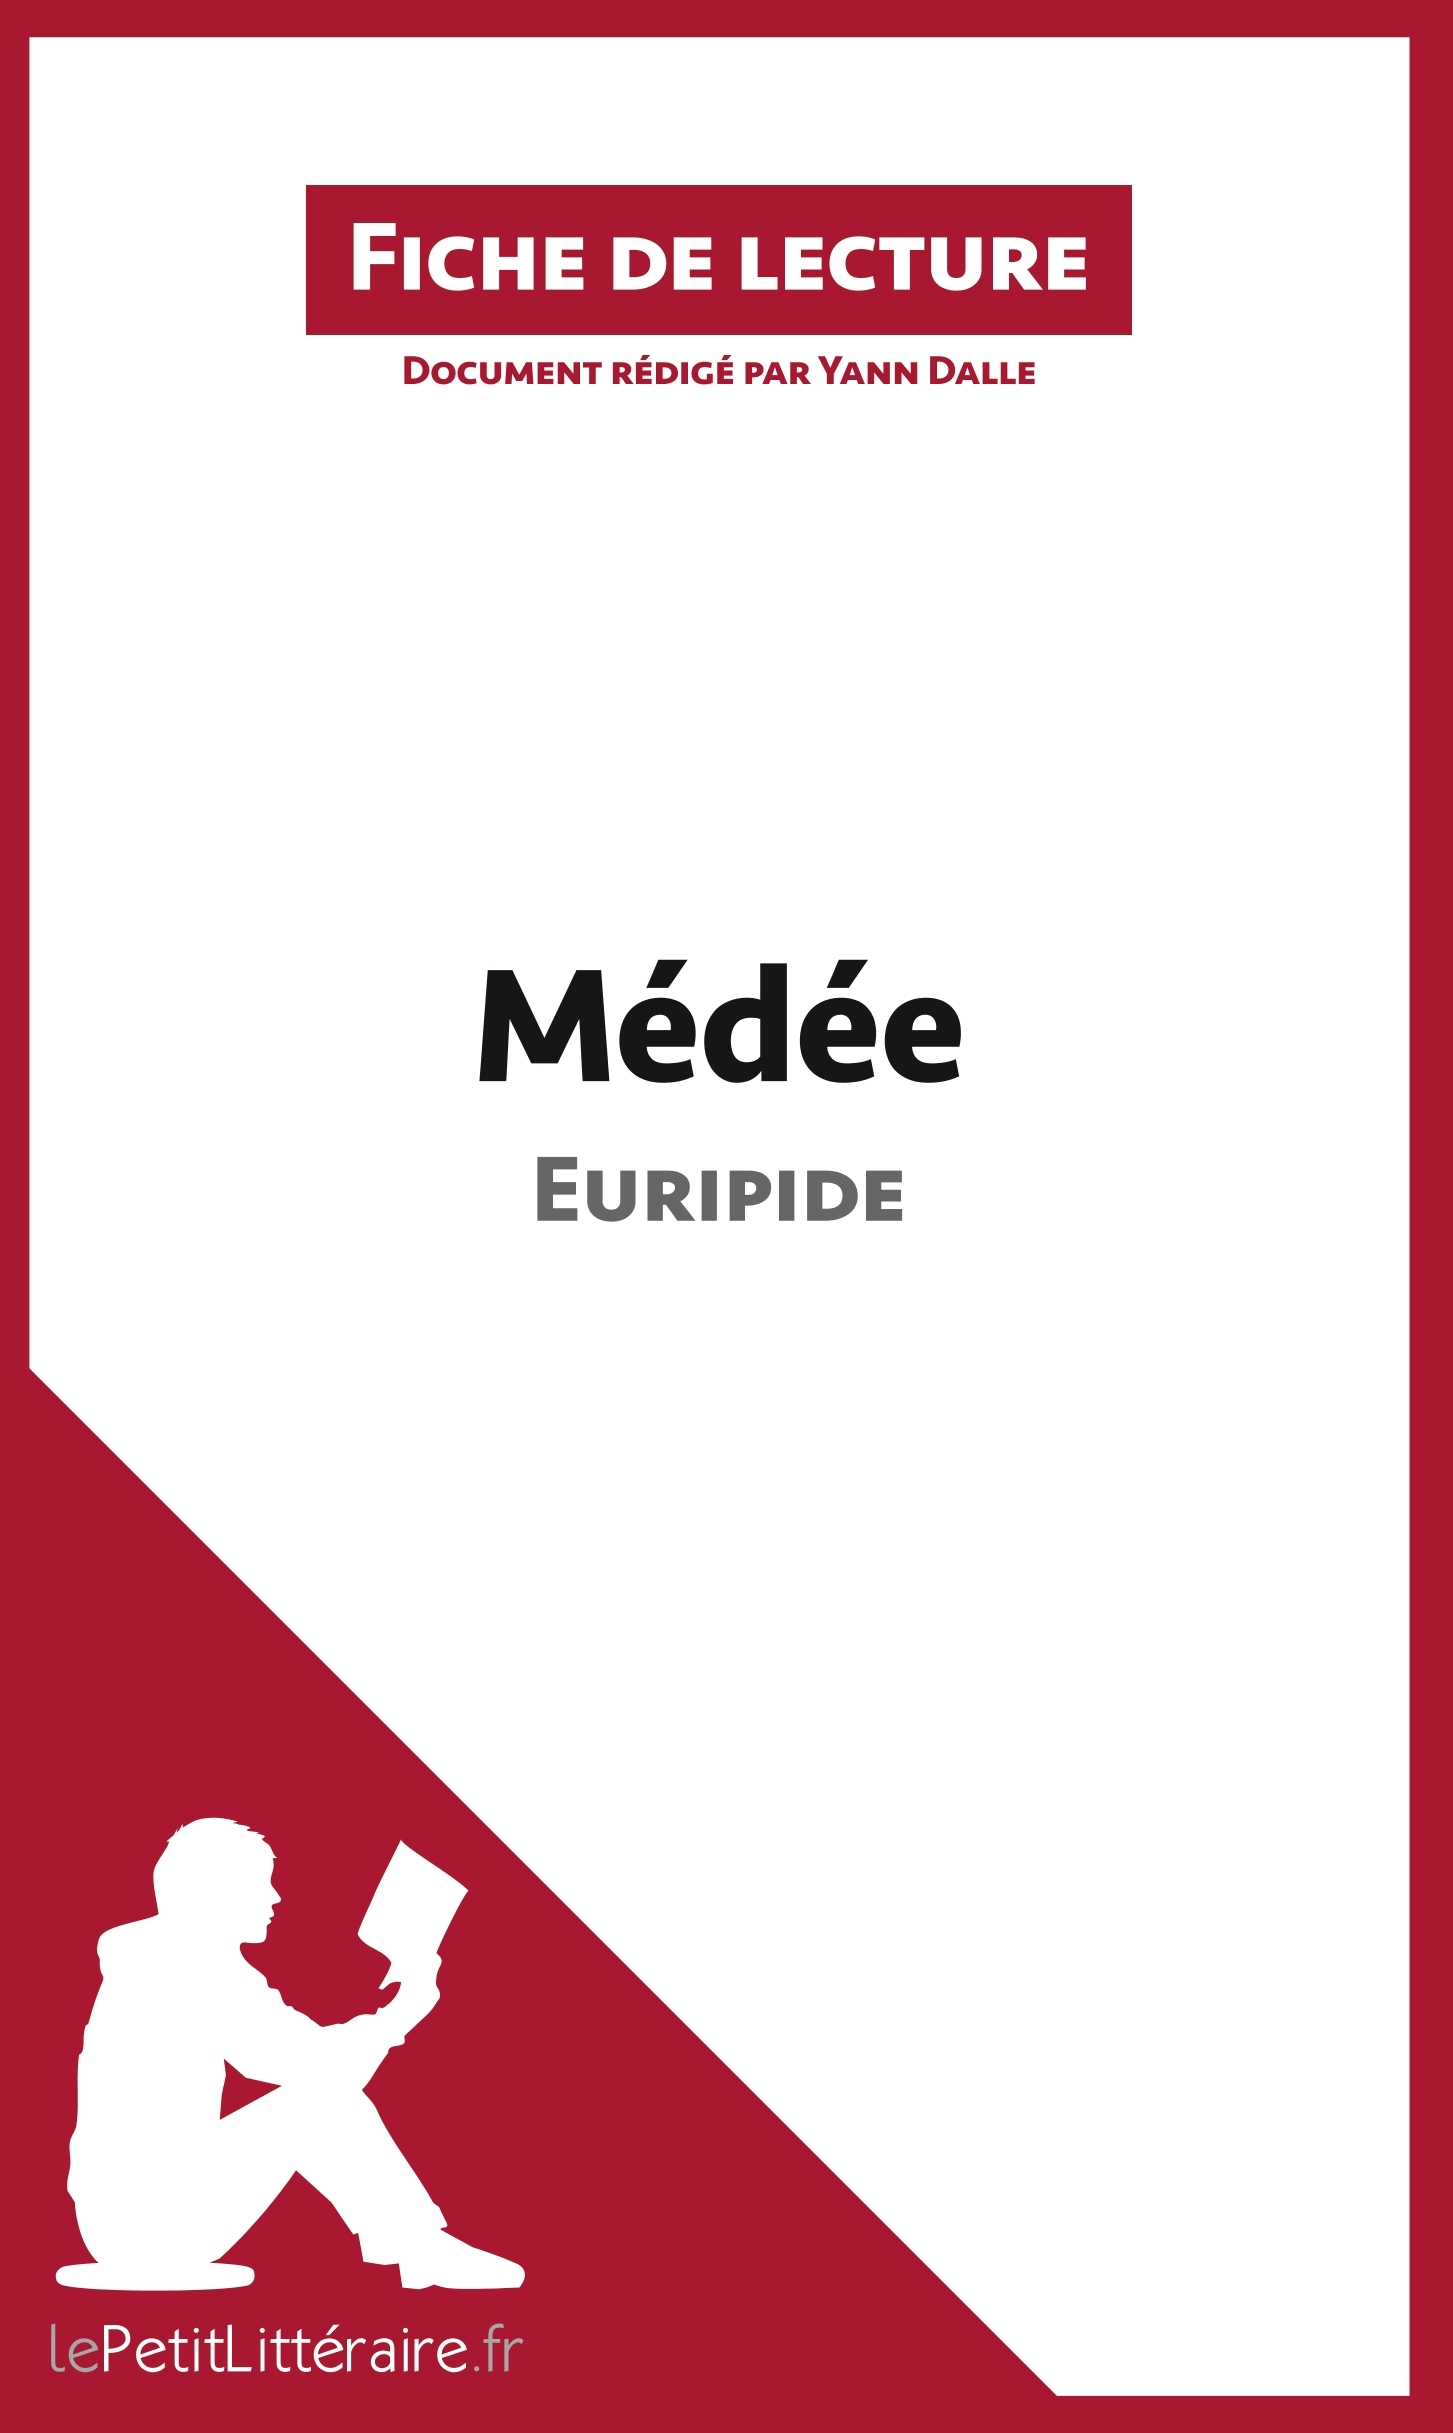 ANALYSE MEDEE D EURIPIDE ANALYSE COMPLETE DE L UVRE ET RESUME